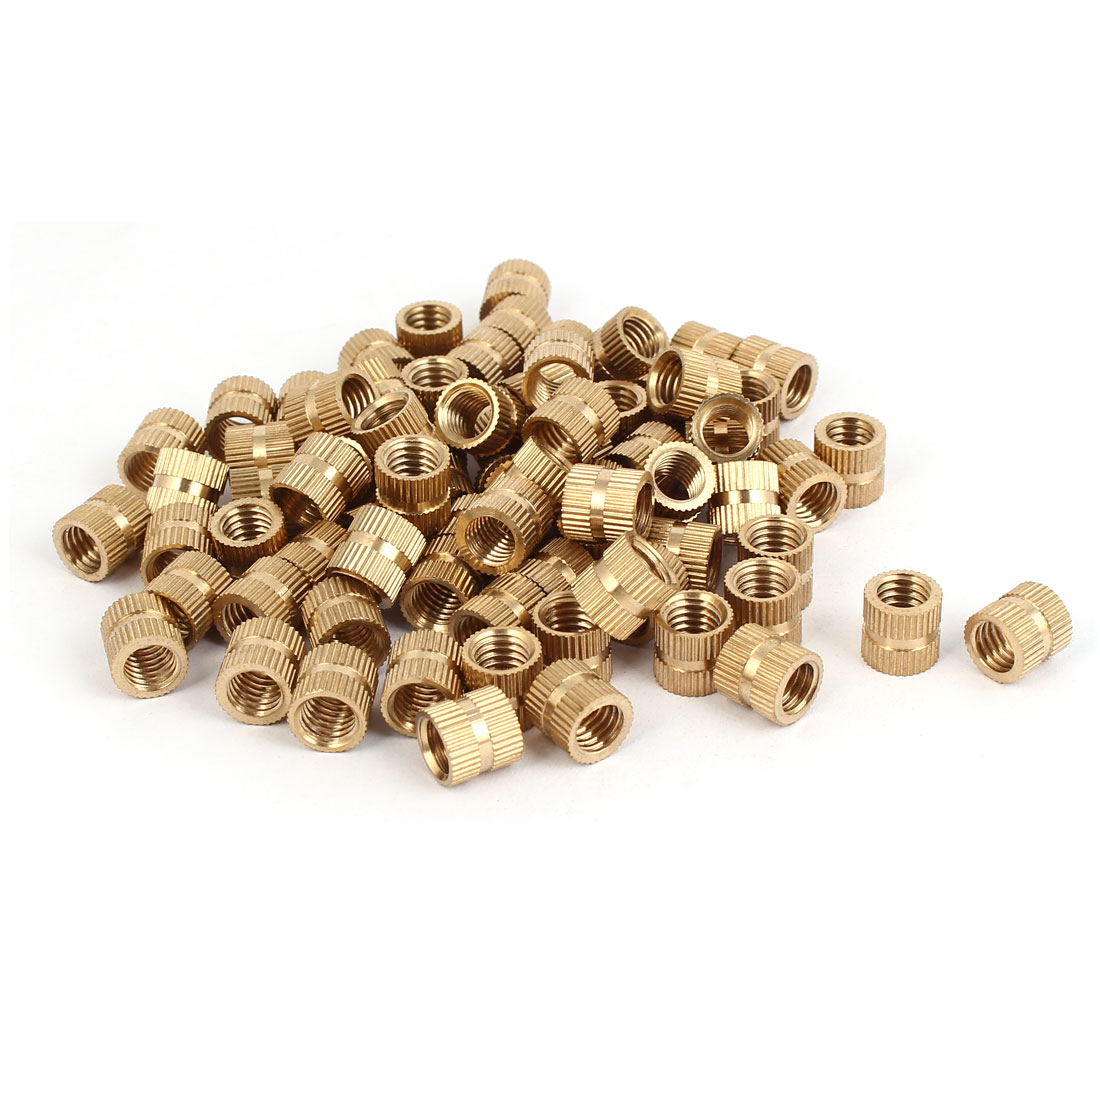 M8 x 10mm Brass Cylinder Injection Molding Knurled Insert Embedded Nuts 100PCS